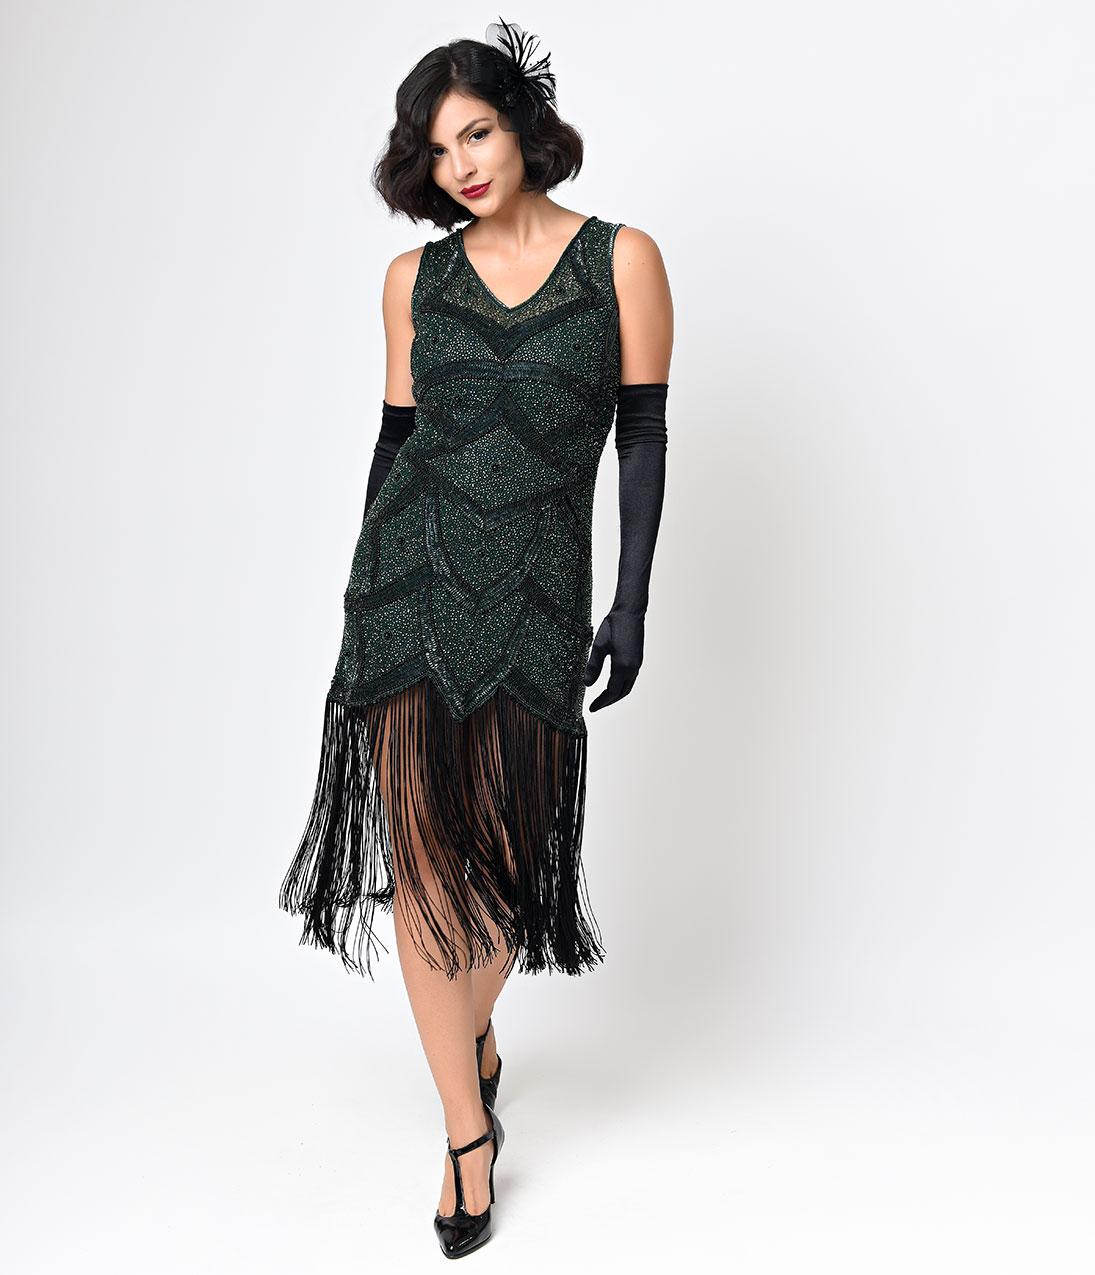 Flapper Dresses How To Style Them Properly Careyfashion